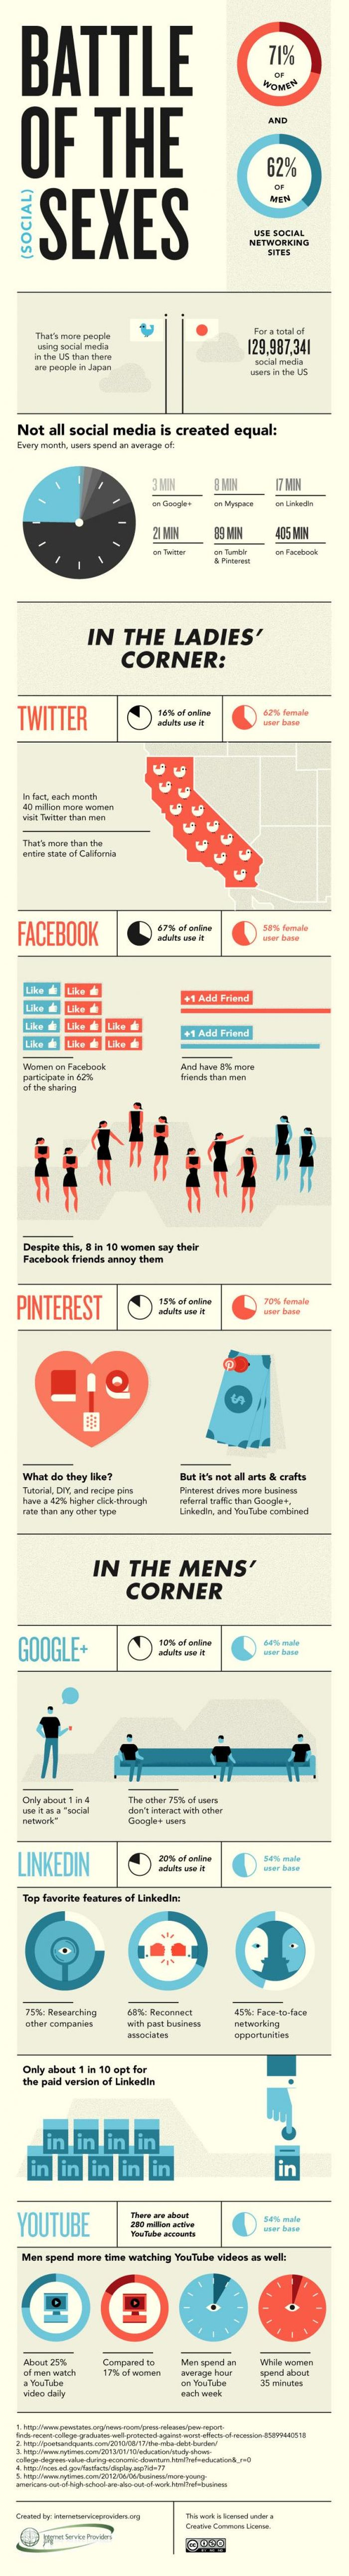 How Men and Women Use Social Media (infographic)